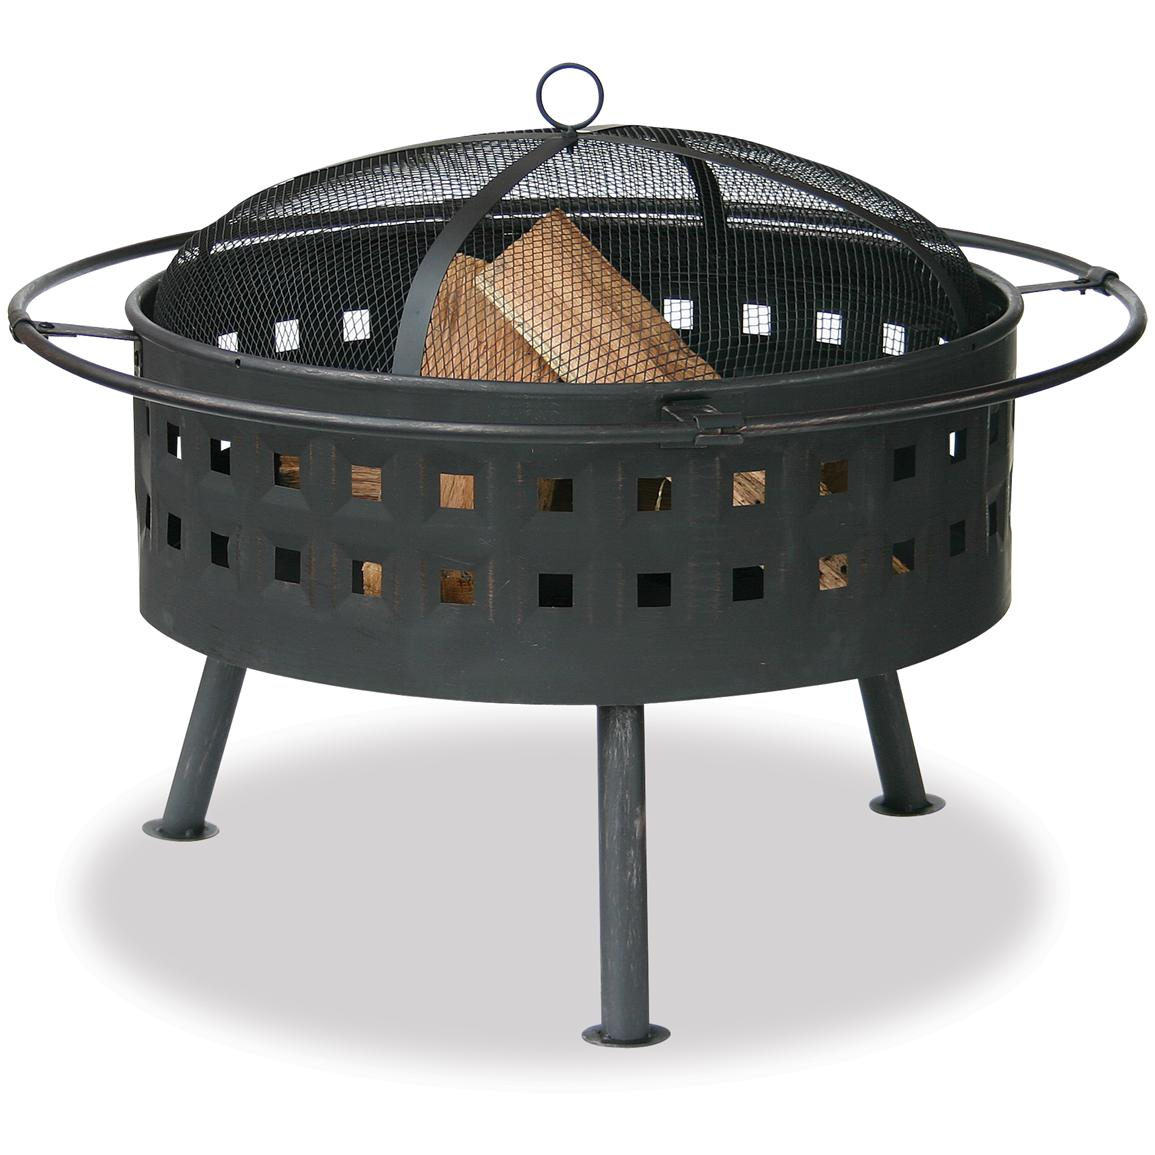 Blue Rhino® Aged Bronze Firebowl with Lattice Design